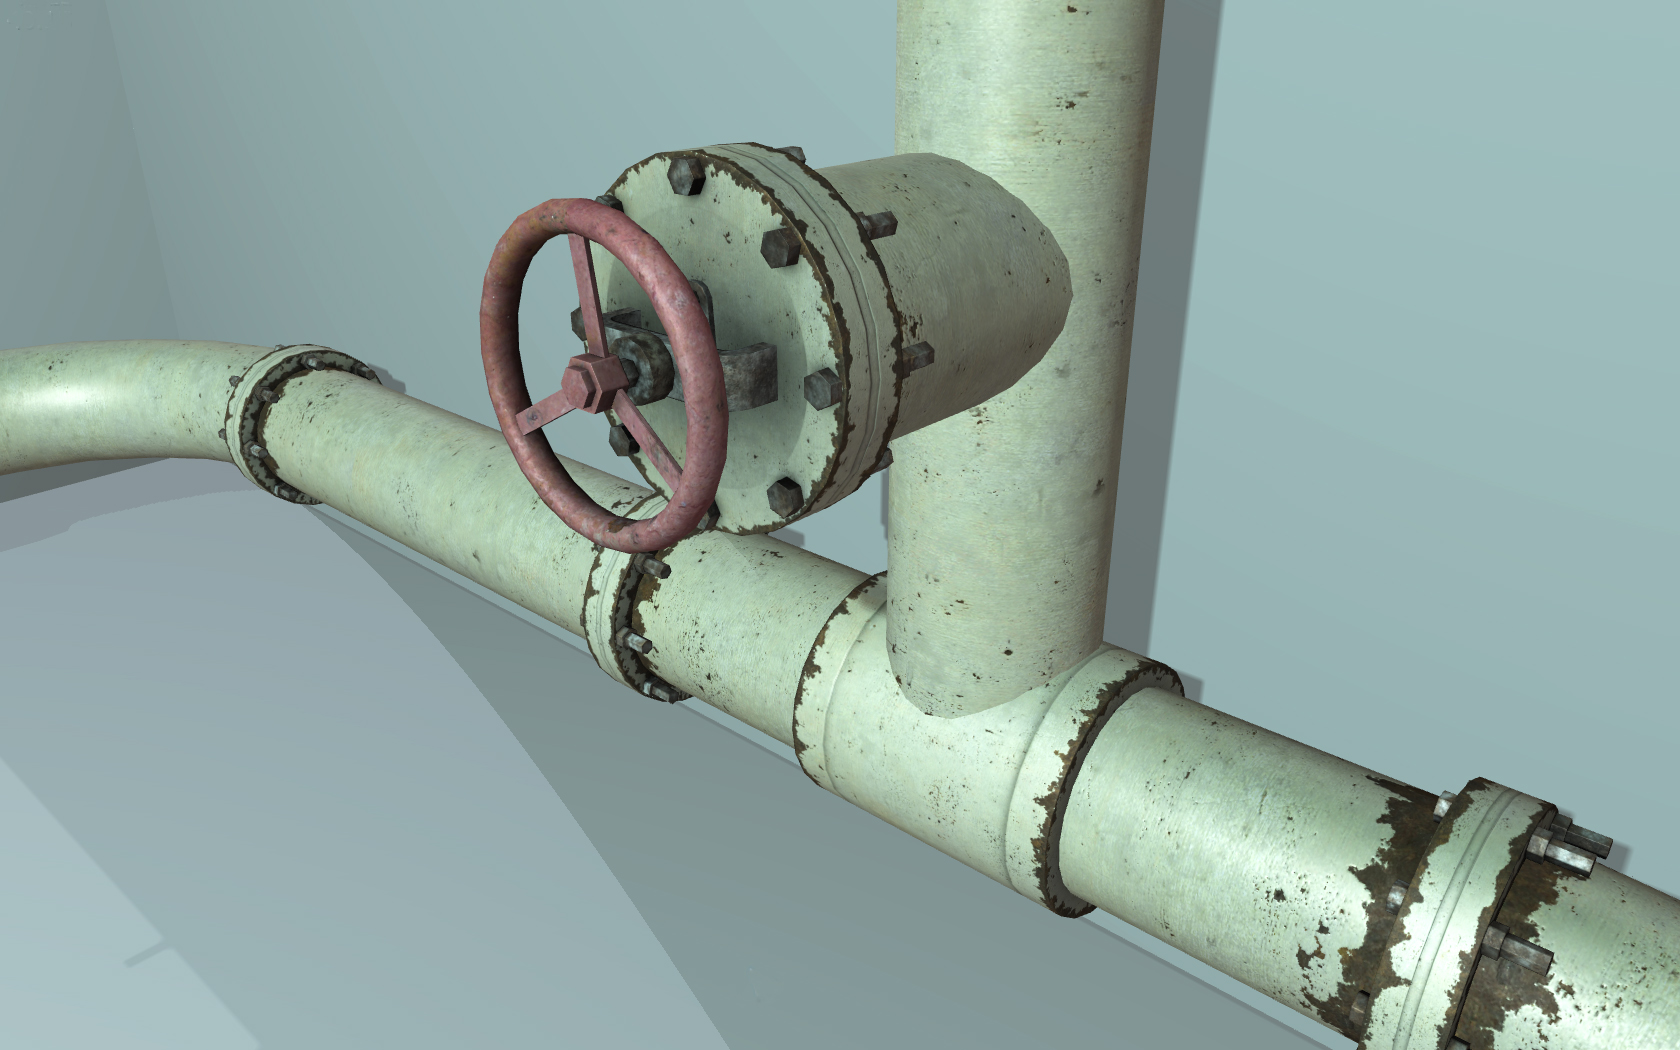 Released] Pipe construction set Pro - Unity Forum